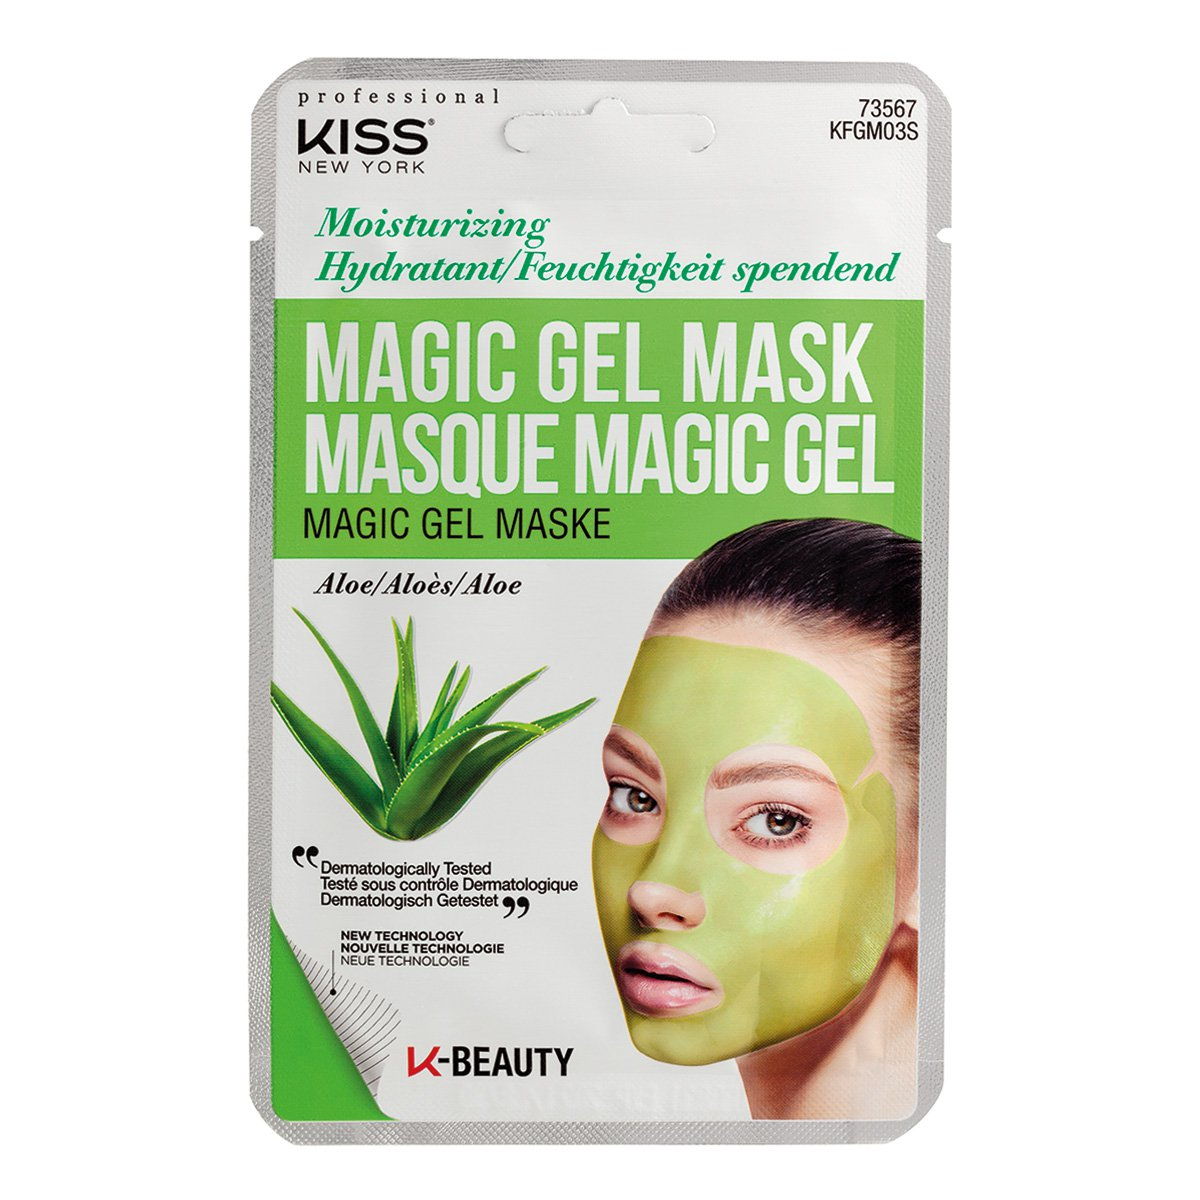 Máscara Facial Kiss New York - Magic Gel Mask Aloe - 1 Unid.